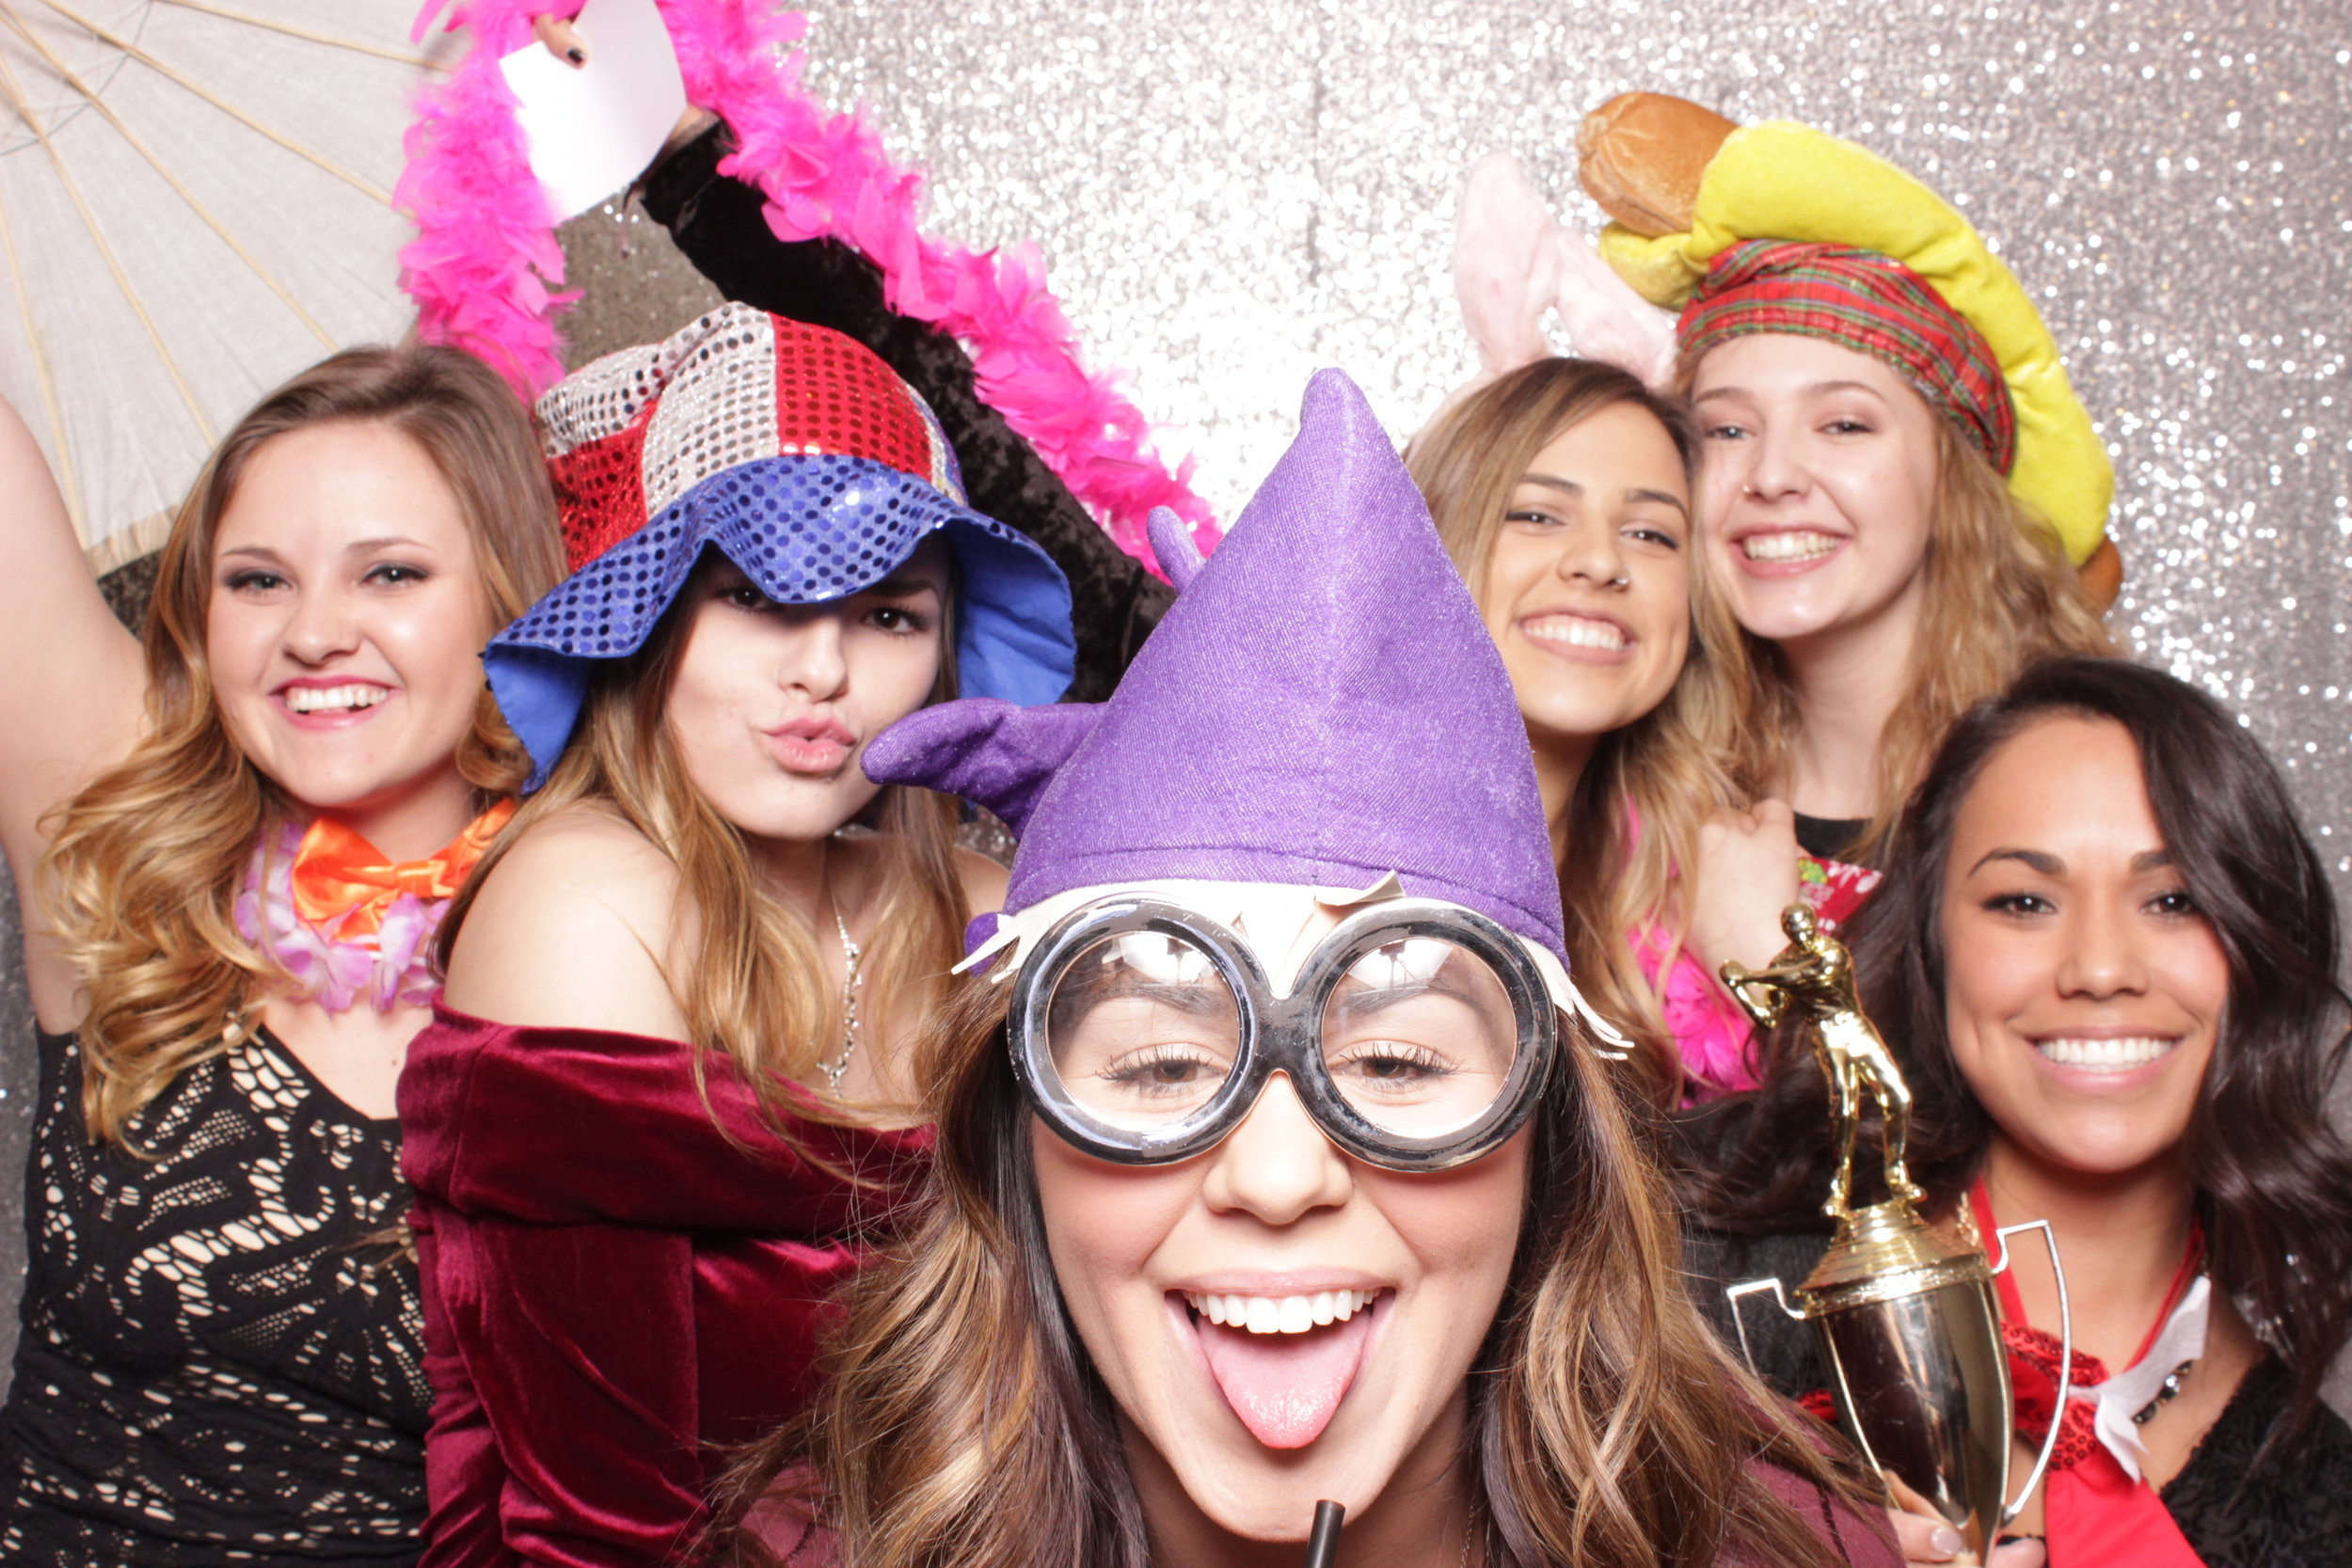 Chico-photo-booth-rental-smiles-laughter